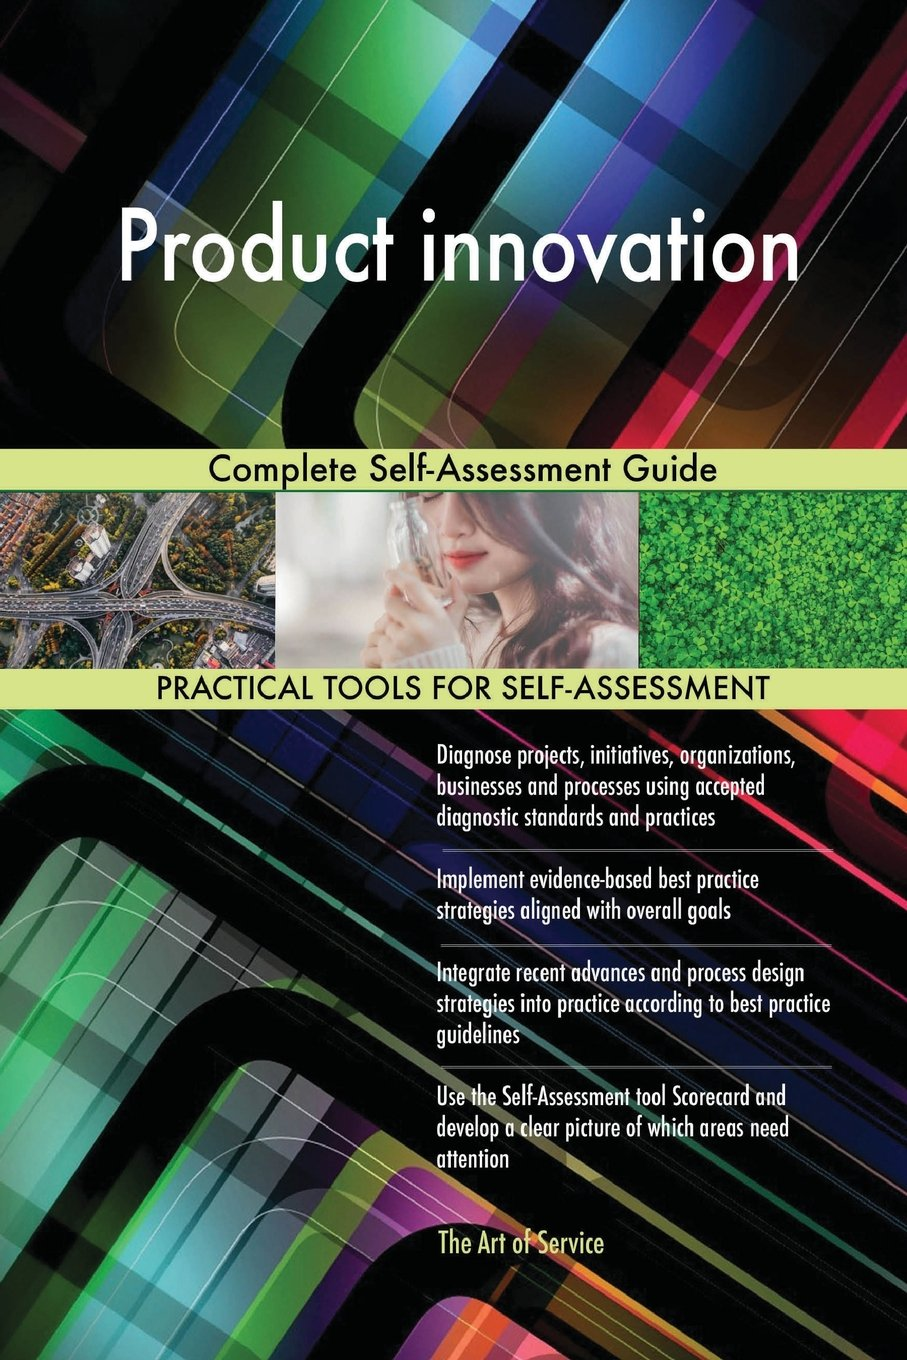 Download Product Innovation Complete Self-Assessment Guide pdf